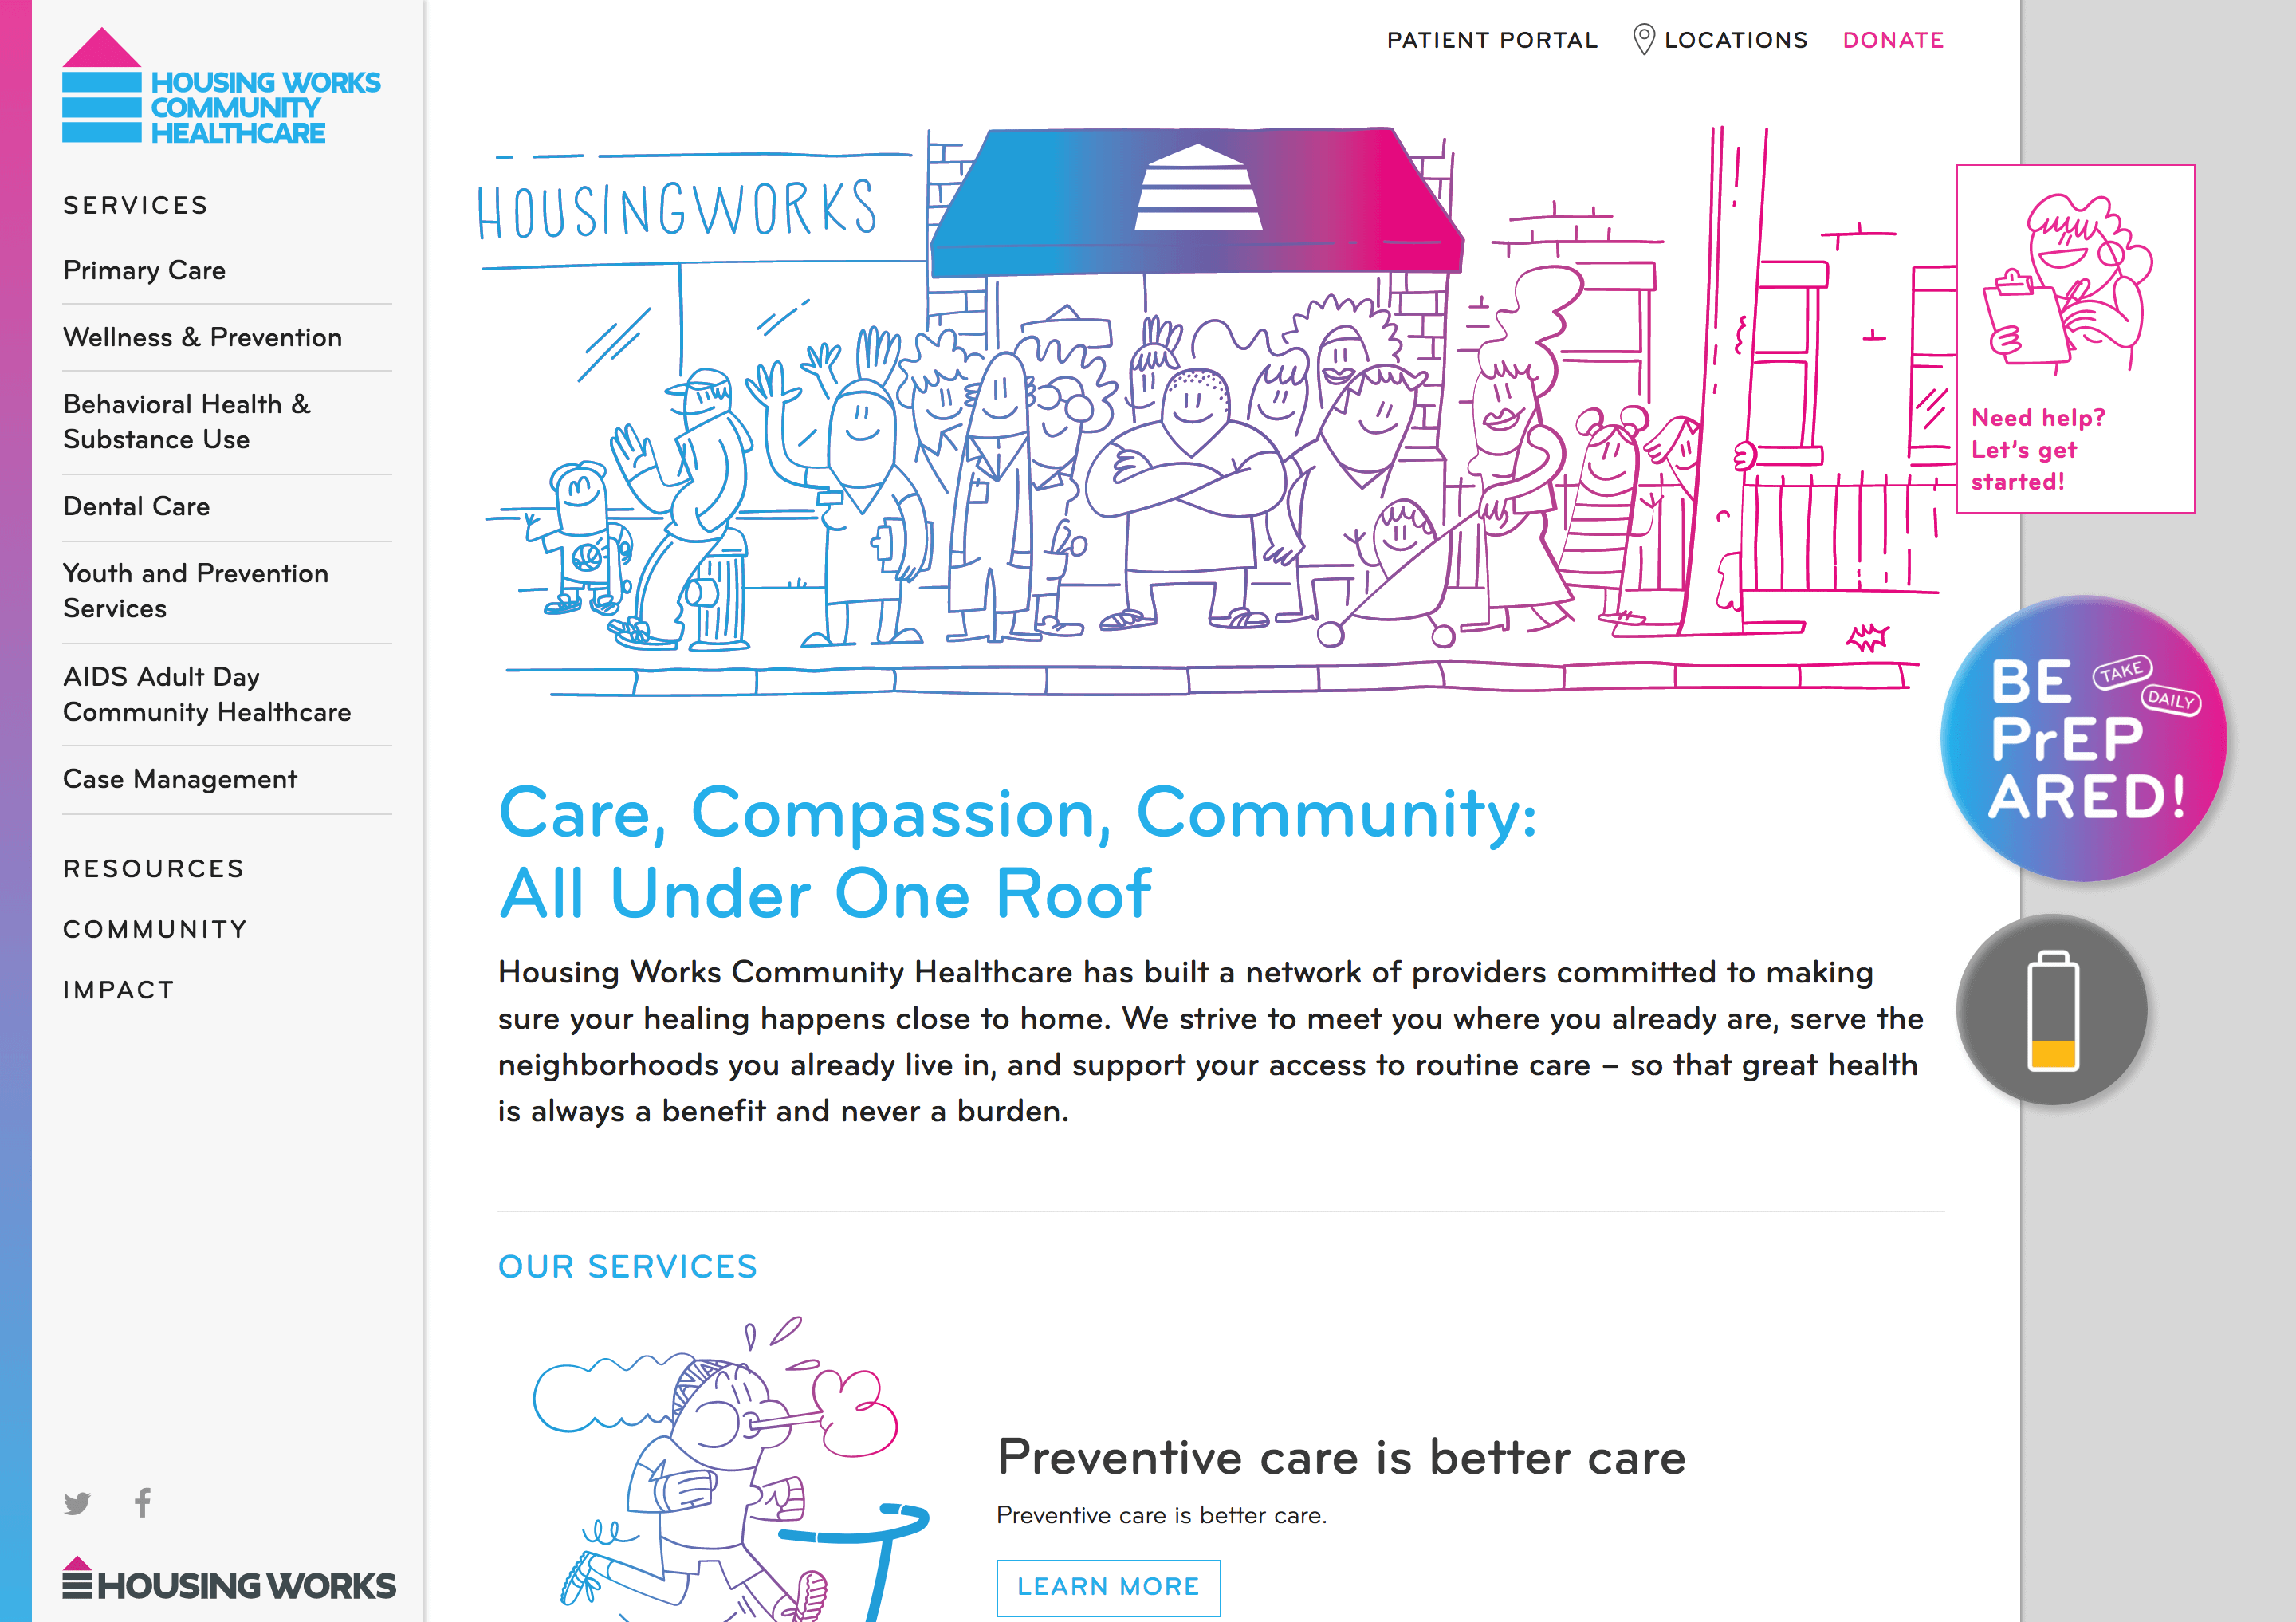 Care, Compassion, Community: All Under One Roof